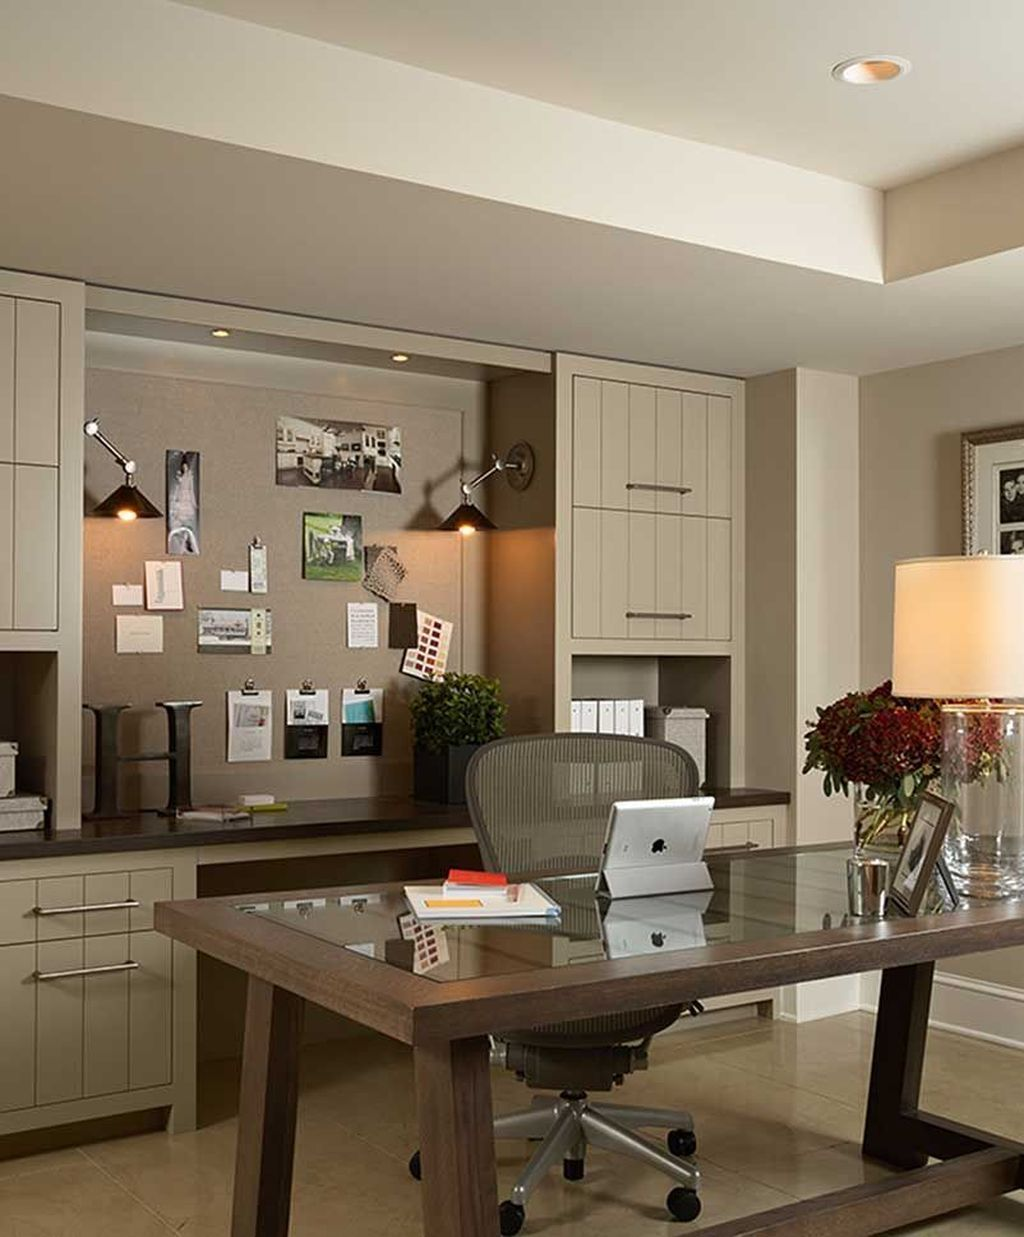 29 Home Office Built In Cabinet Ideas 5 Furniture Inspiration 2020 Home Office Design Living Room Lighting